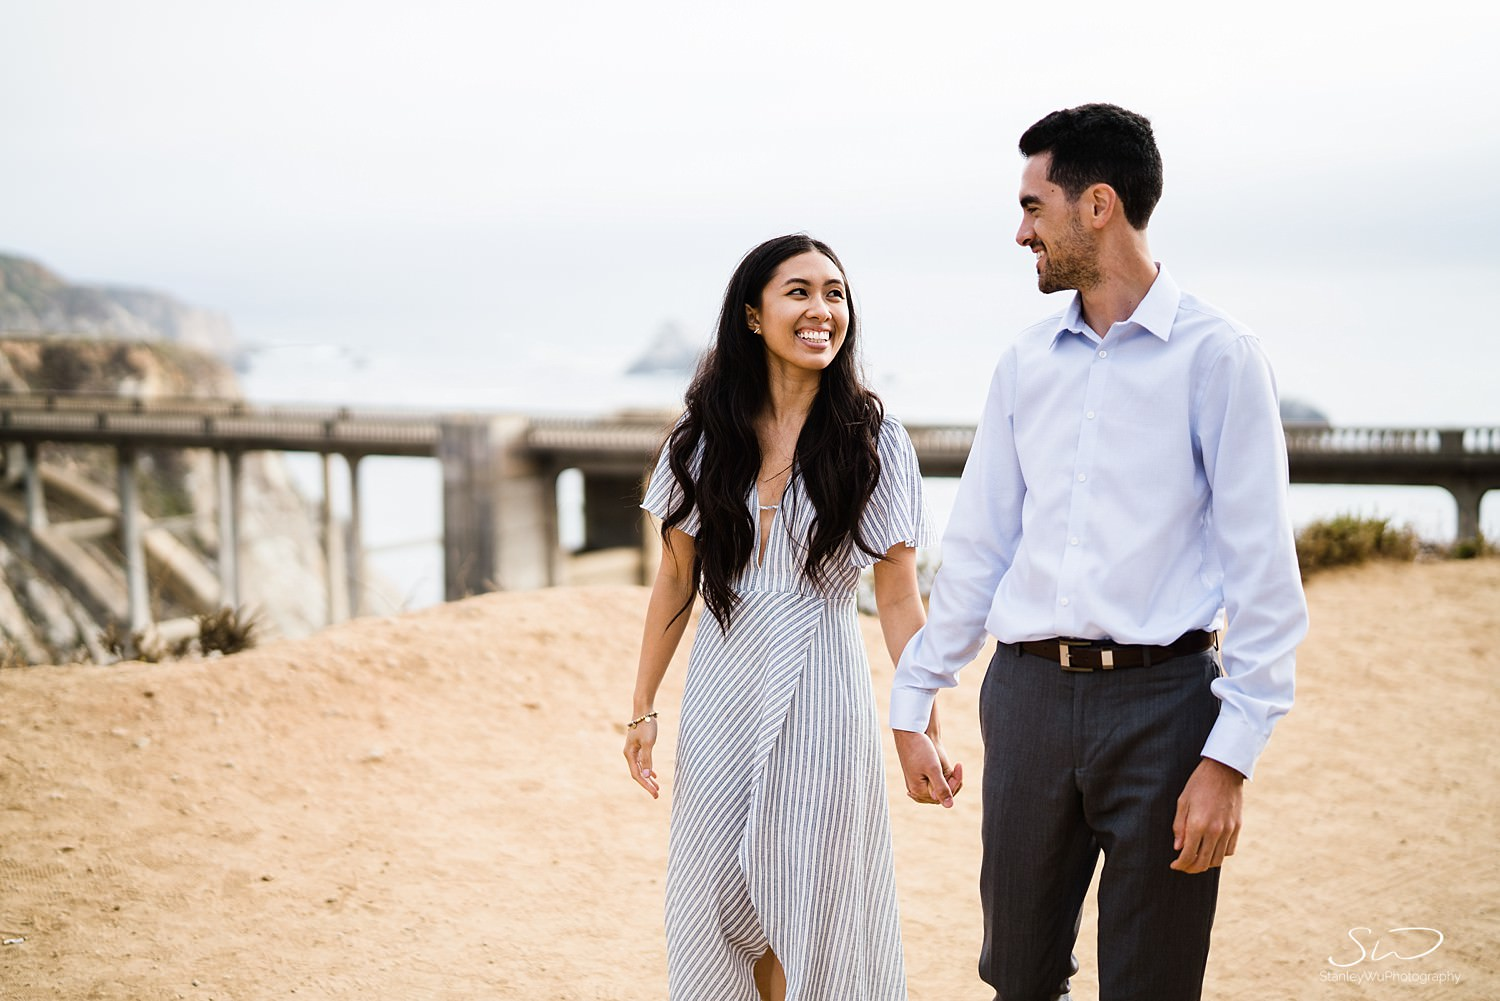 big-sur-travel-adventure-engagement-session_0032.jpg